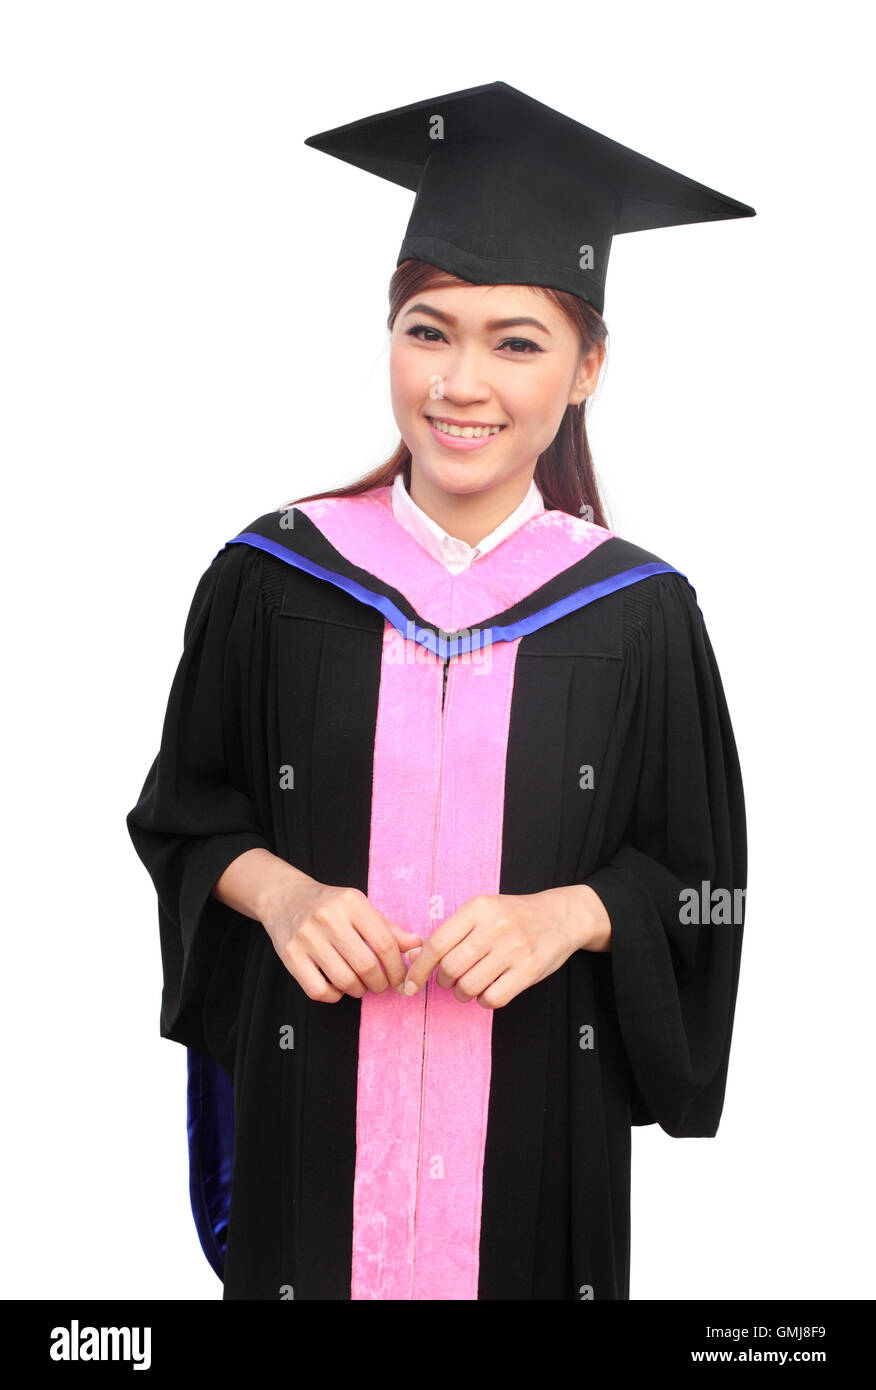 woman with graduation cap and gown Stock Photo: 115957165 - Alamy